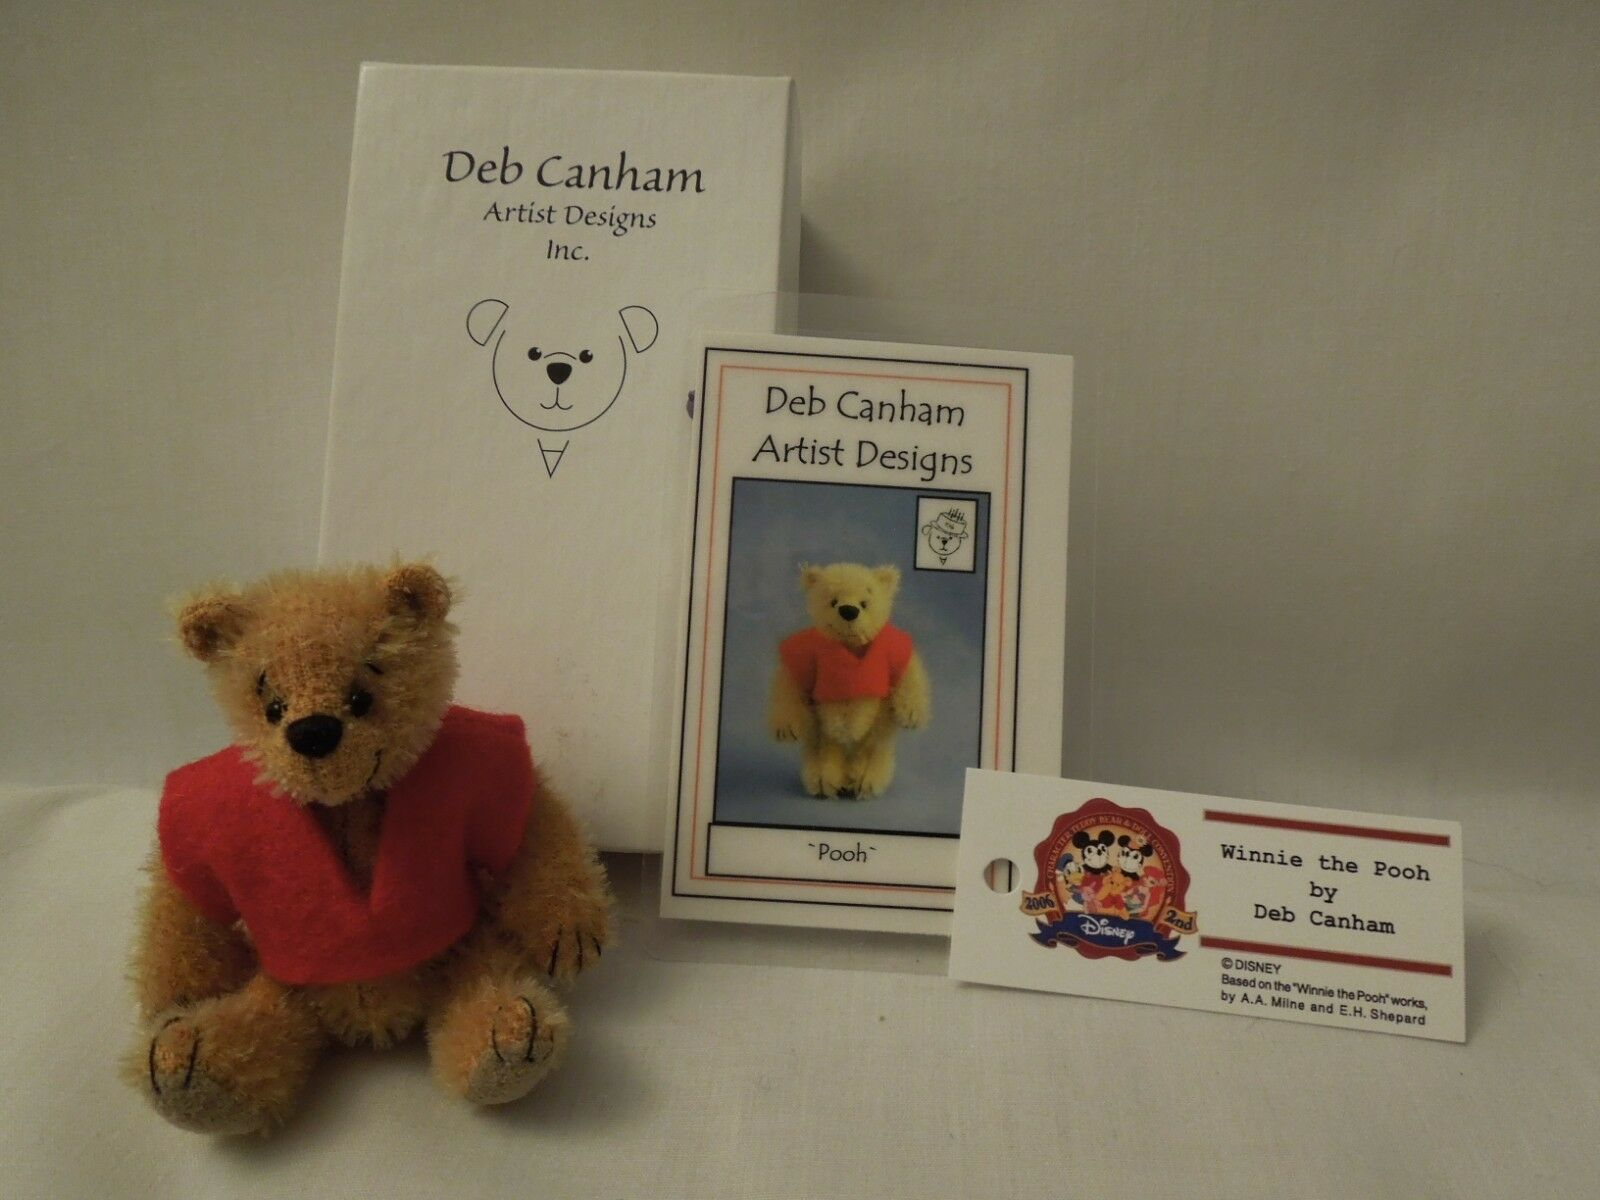 Deb Canham Artist Designs Mohair  Pooh  14/20 LE Signed 1999